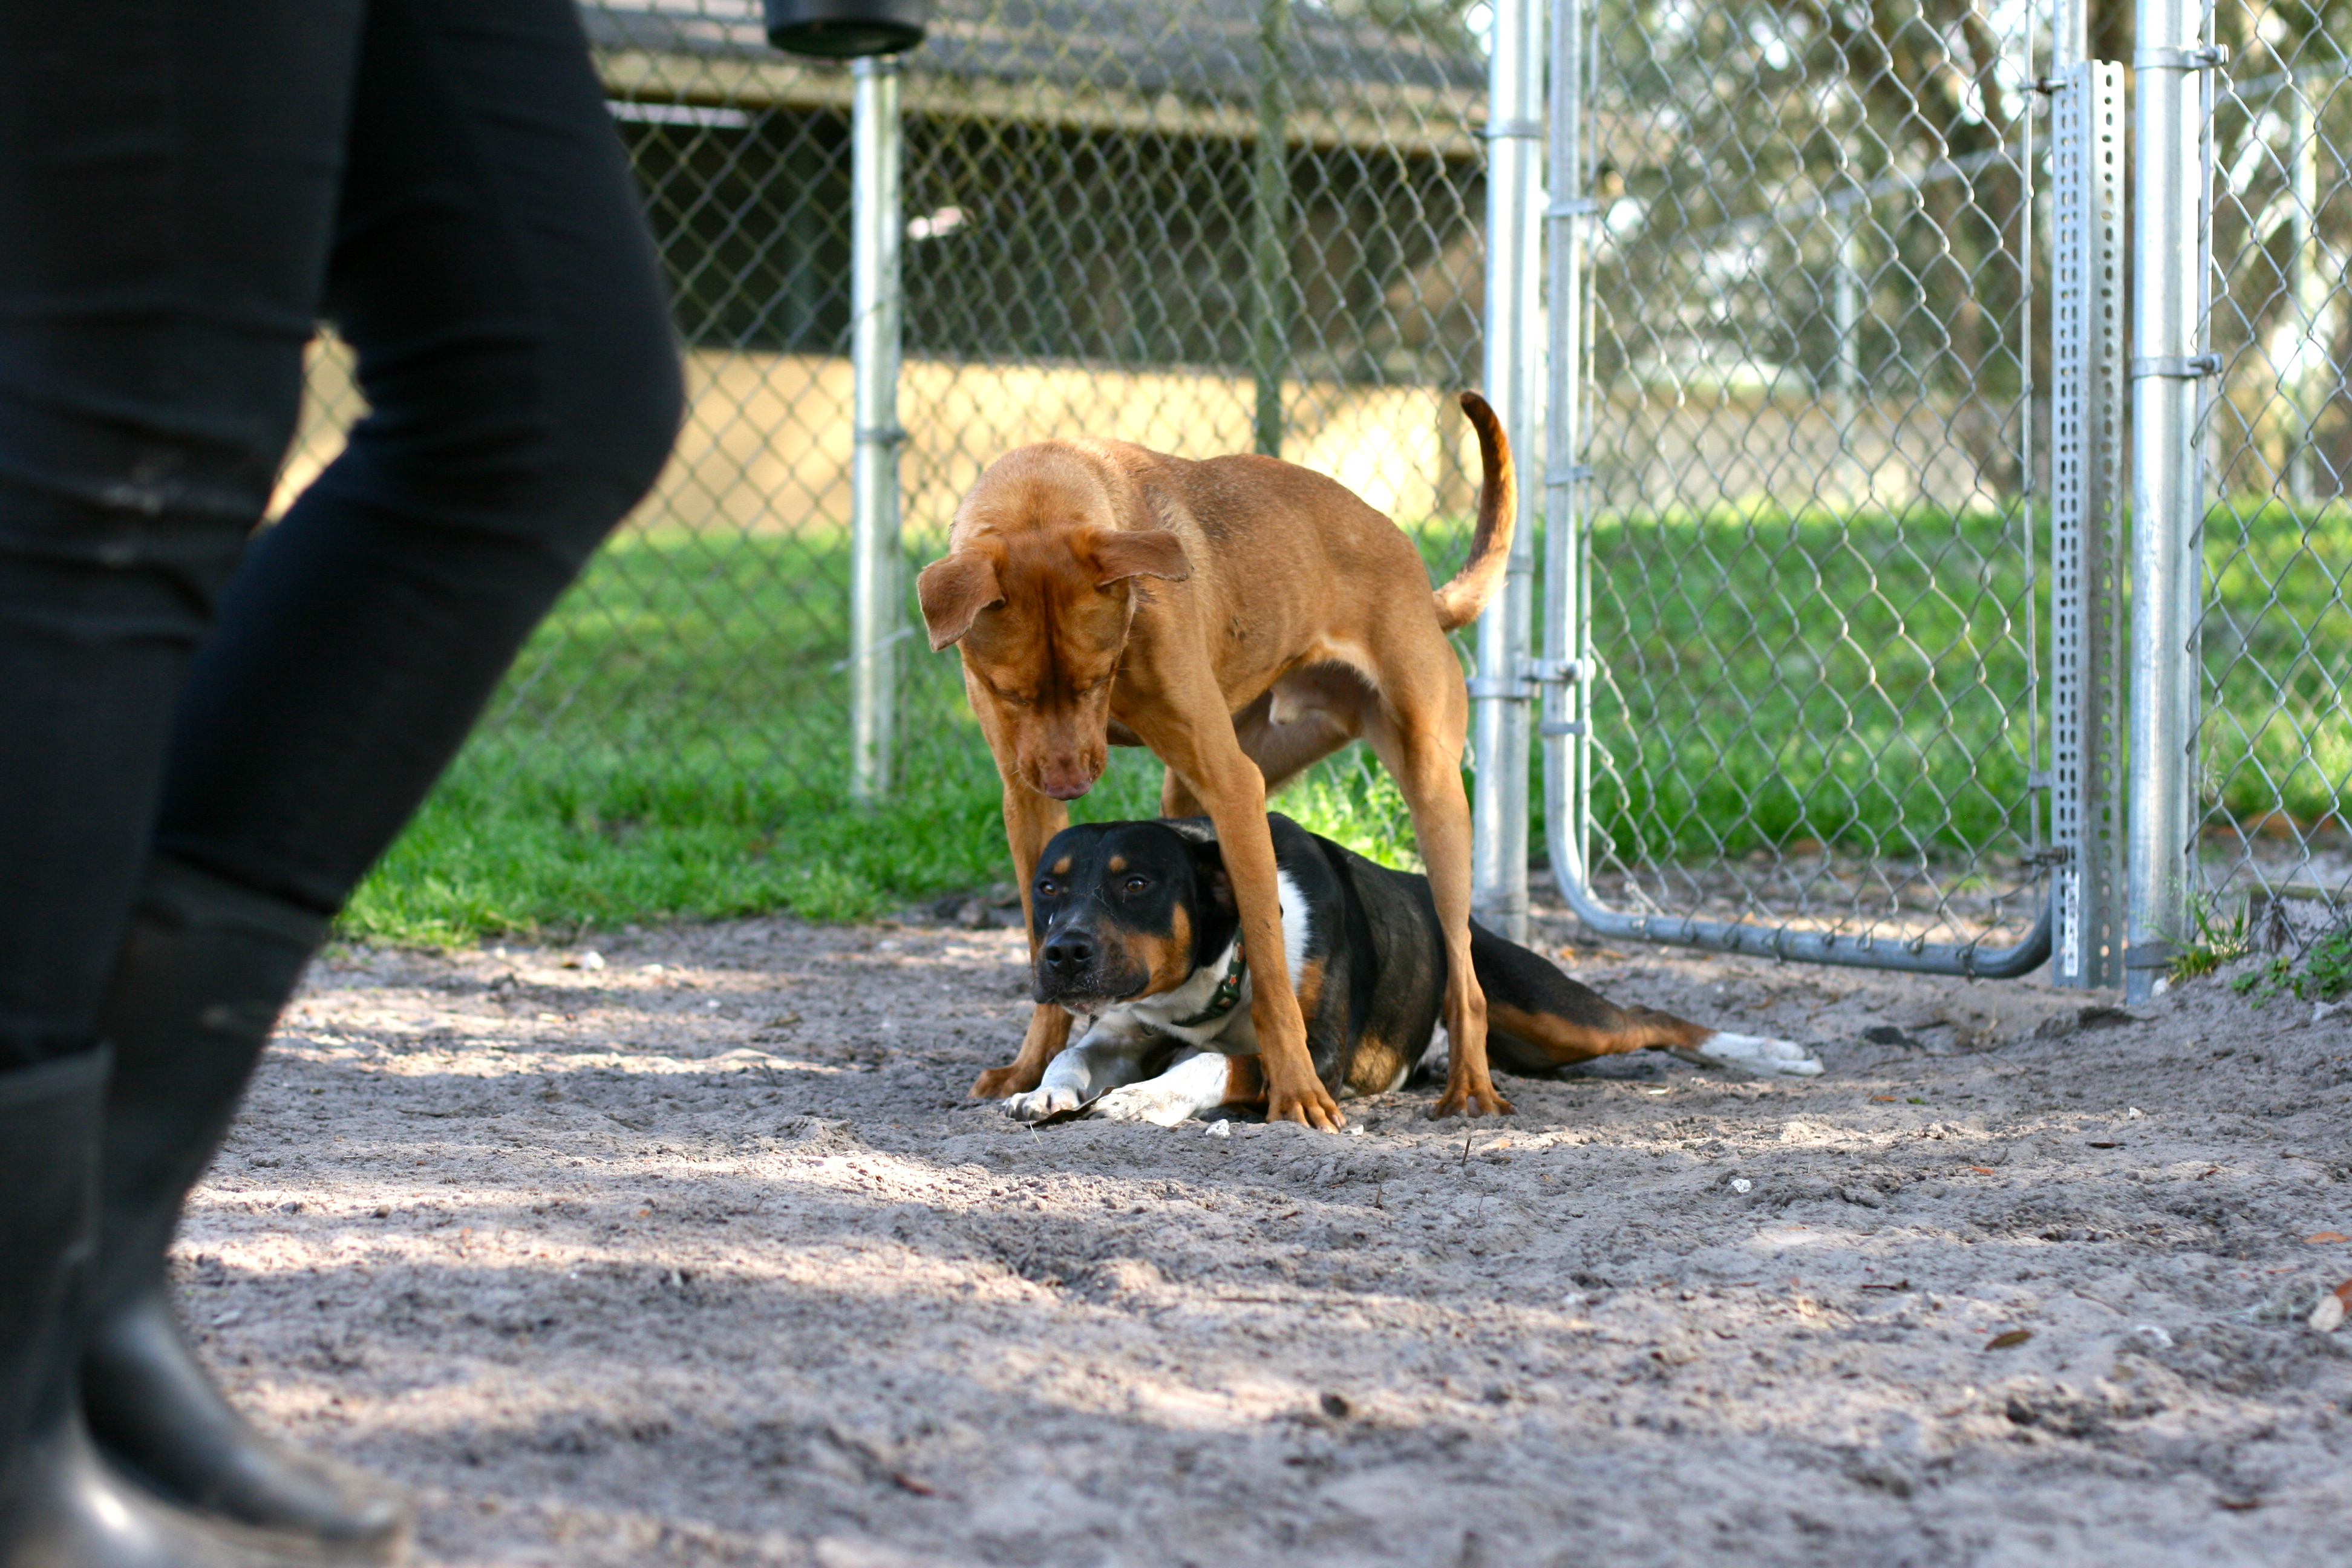 Staggering One Dog At A And How Do We Figure Out Who Likes Play Well We Test M Everyone Gets A Chance To See How Y Like This Lets Us Knowif Dogs Temporary Permanent Love Saving World bark post How Do Dogs See